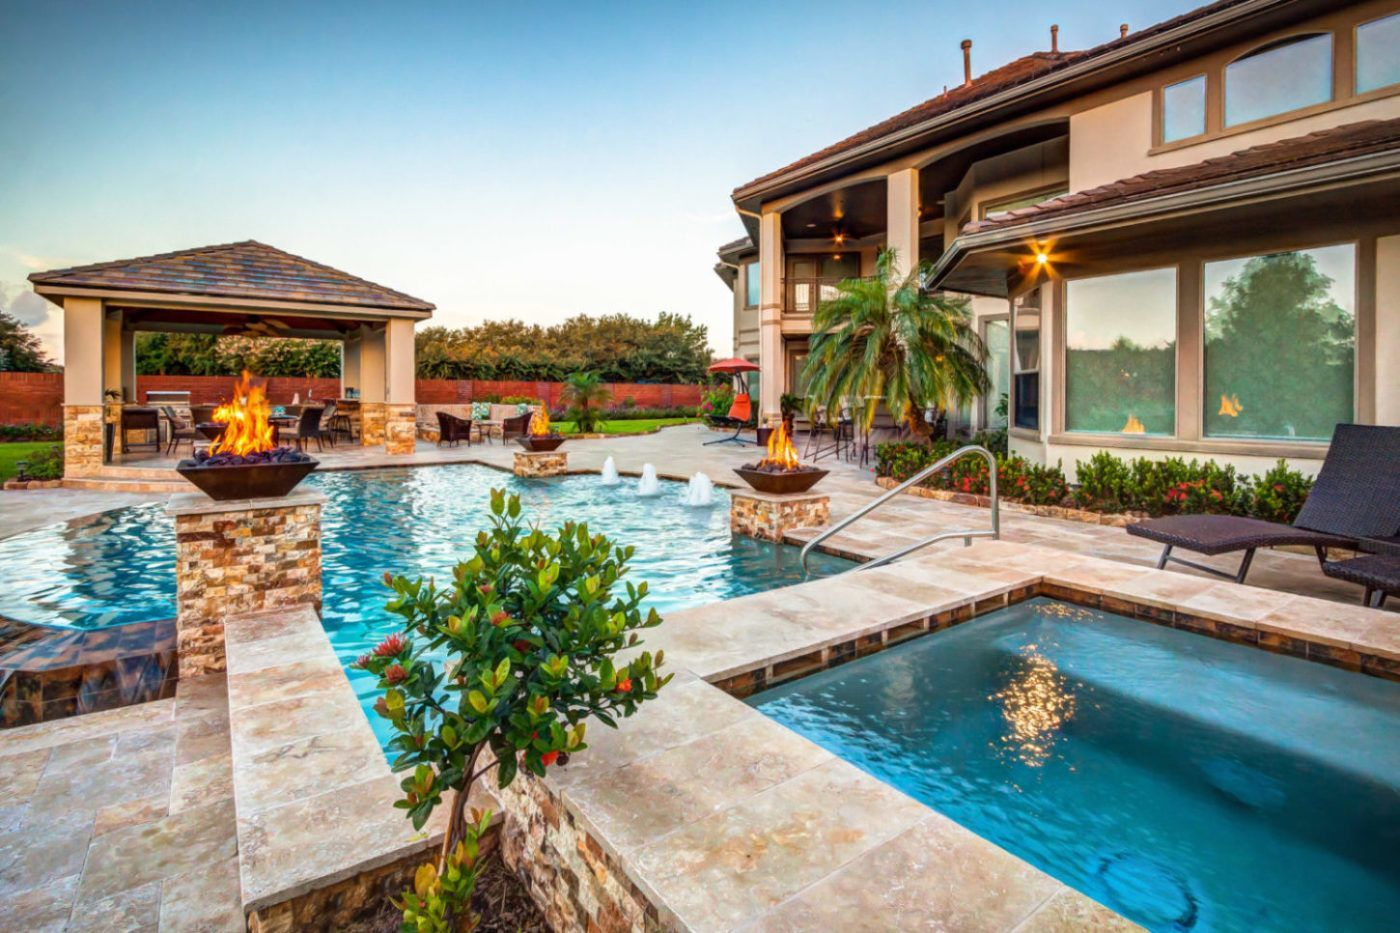 Custom Swimming Pools Priced Over 100k Outdoor Kitchen Appliances Outdoor Kitchen Outdoor Kitchen Decor